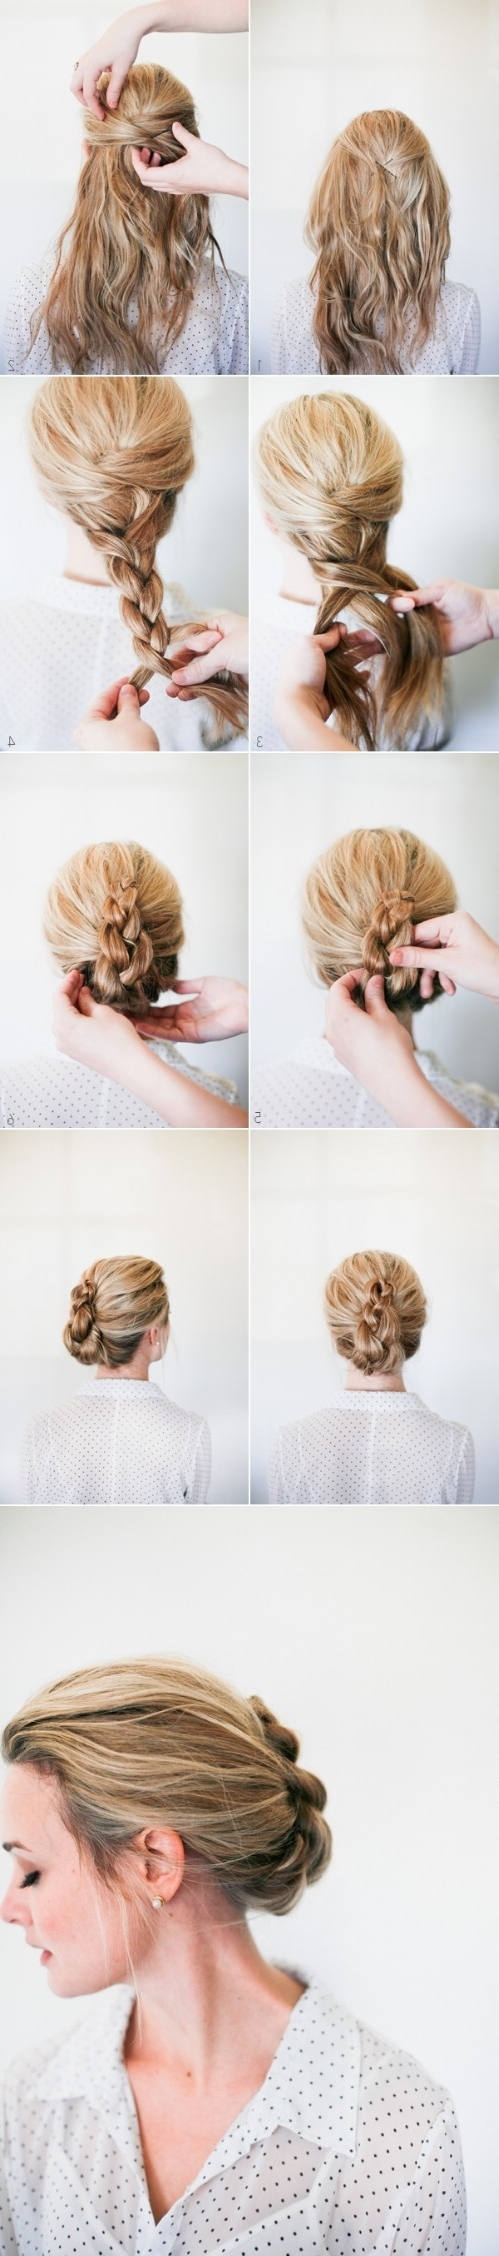 20 Gorgeous 5 Minute Hairstyles To Save You Some Snooze Time – Diy In Well Liked Romantic Twisted Hairdo Hairstyles (View 1 of 20)